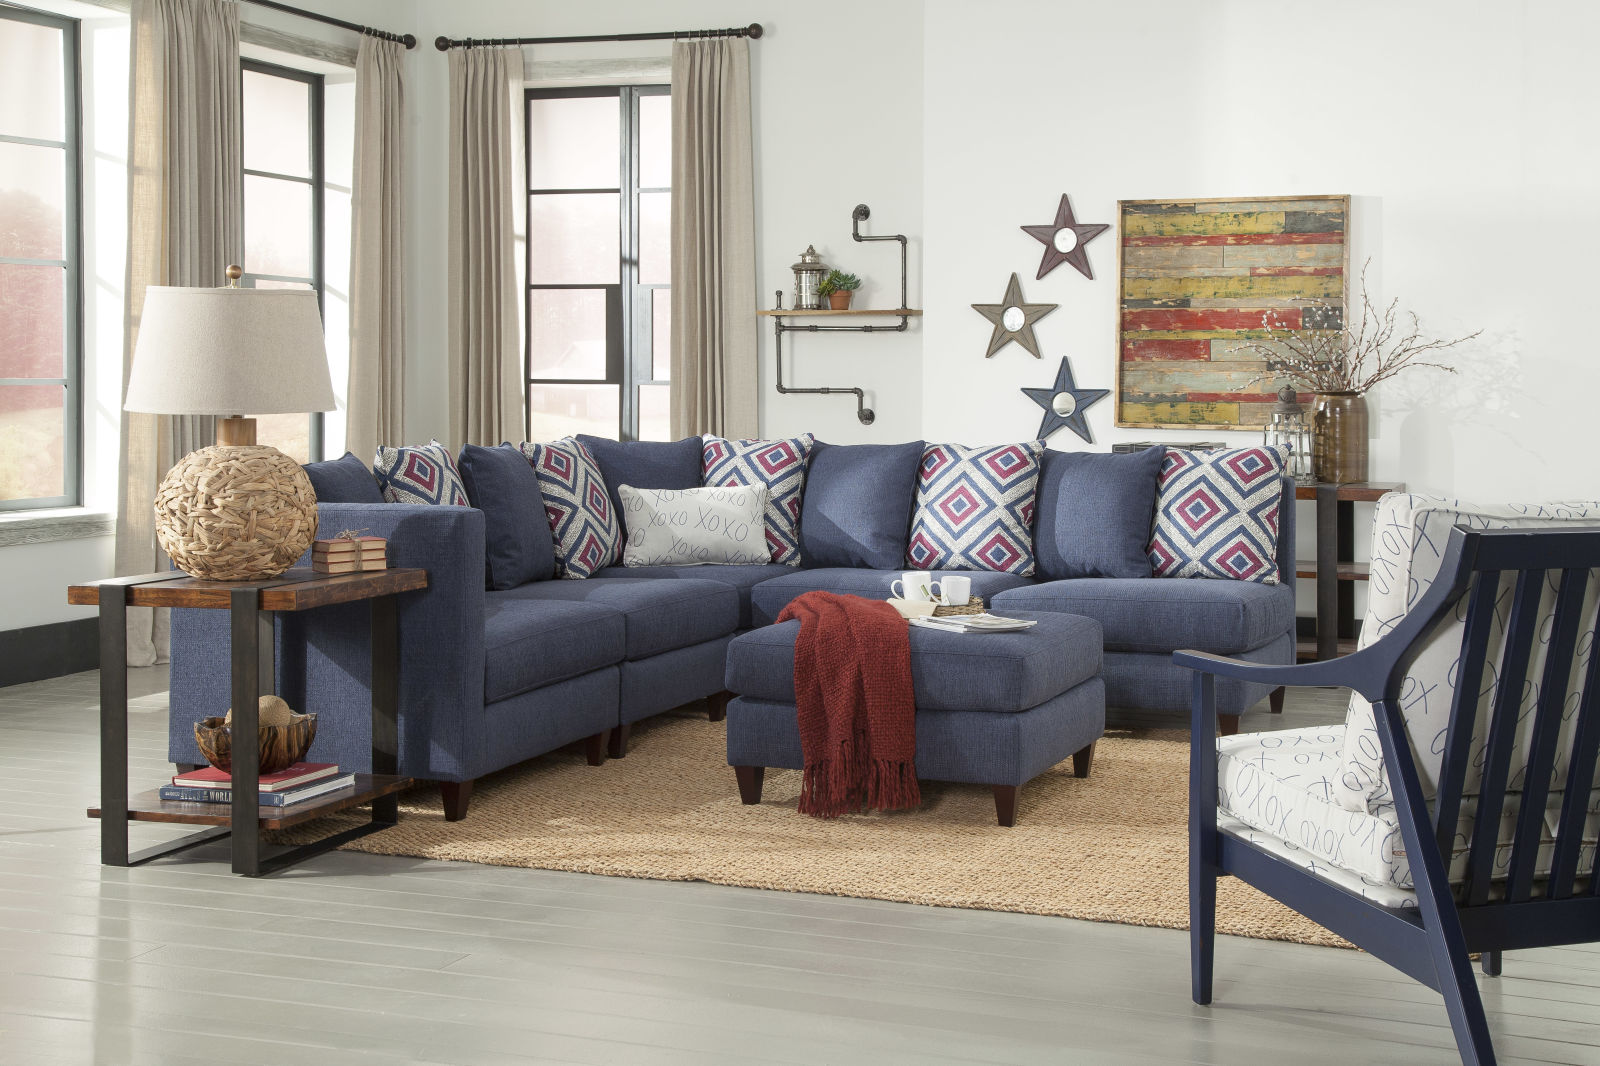 Trisha yearwood home collection home decorating - Home decorating online collection ...